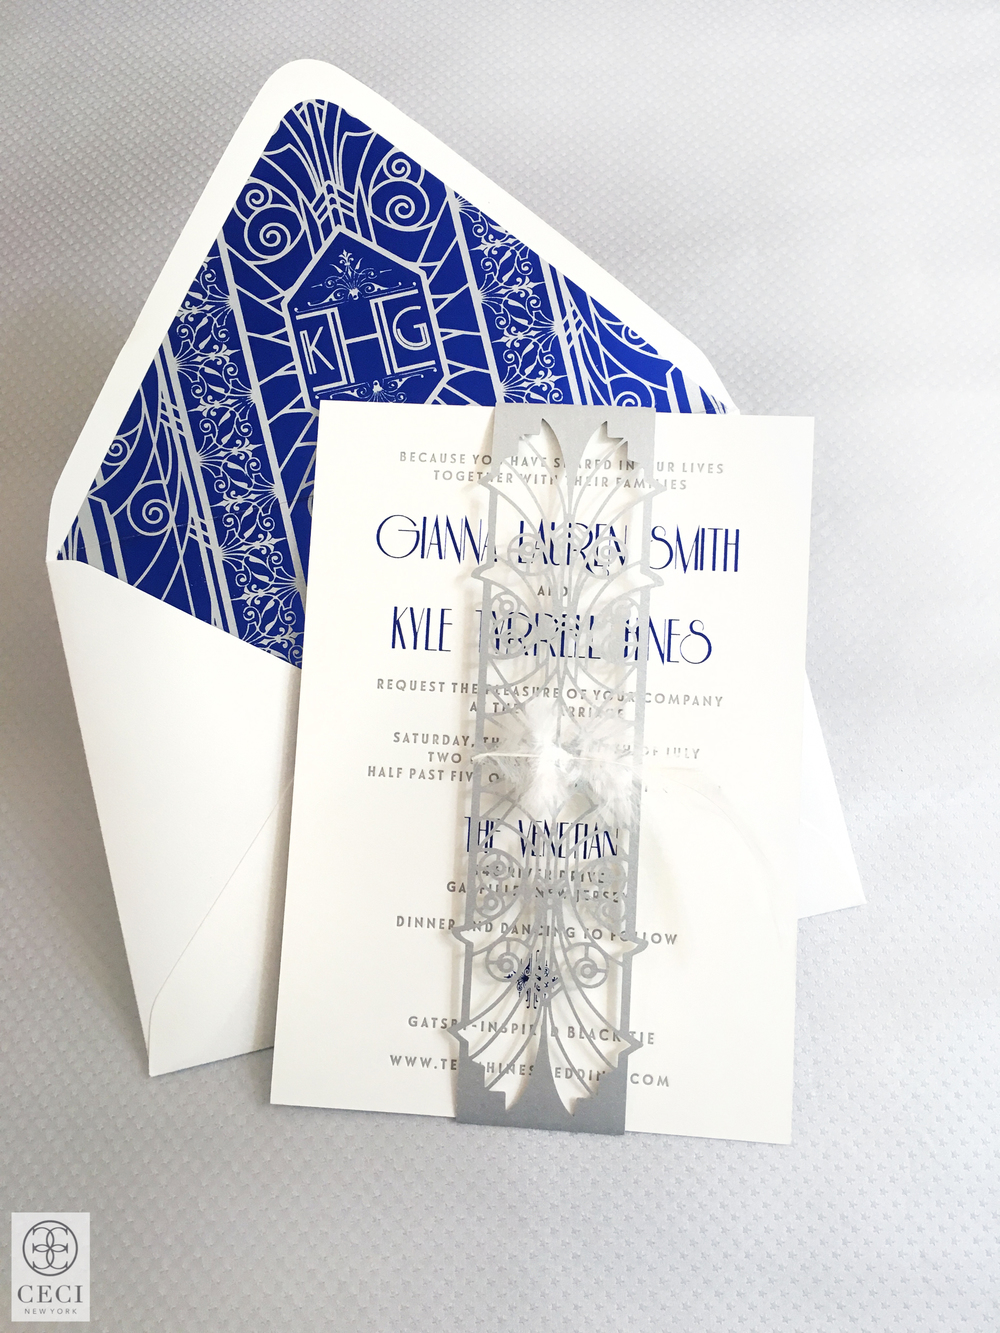 Ceci_New_York_New_Jersey_Invitations_Wedding_New_York_Elegance_Silver_Blue_Letterpress_Deco_Classic_Foil_Stamping_Custom_Couture_Personalized-85.jpg